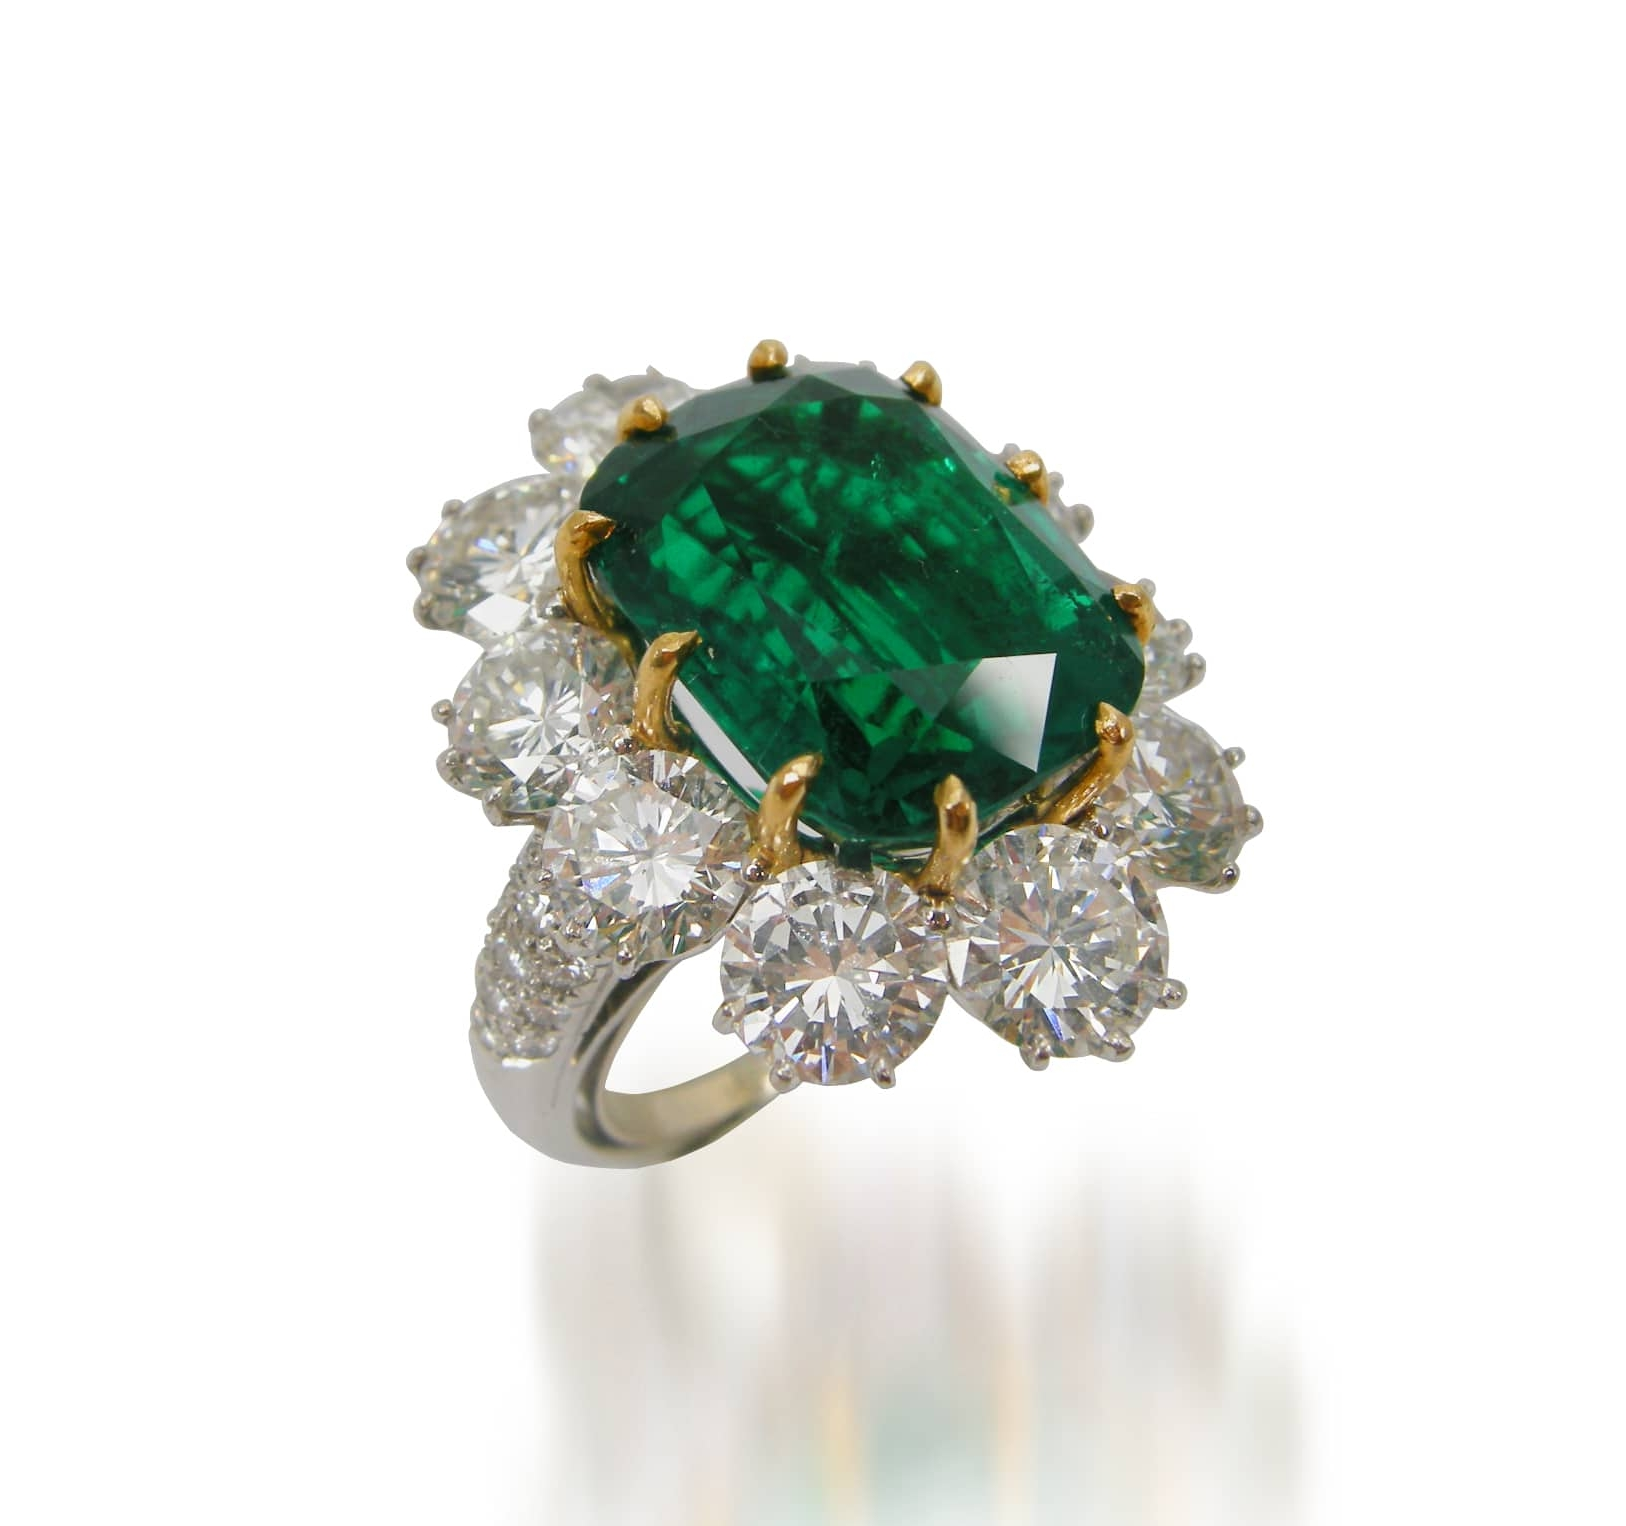 EMERALD AND DIAMOND RING BESPOKE FINE JEWELLERY BY SHAHINA HATTA